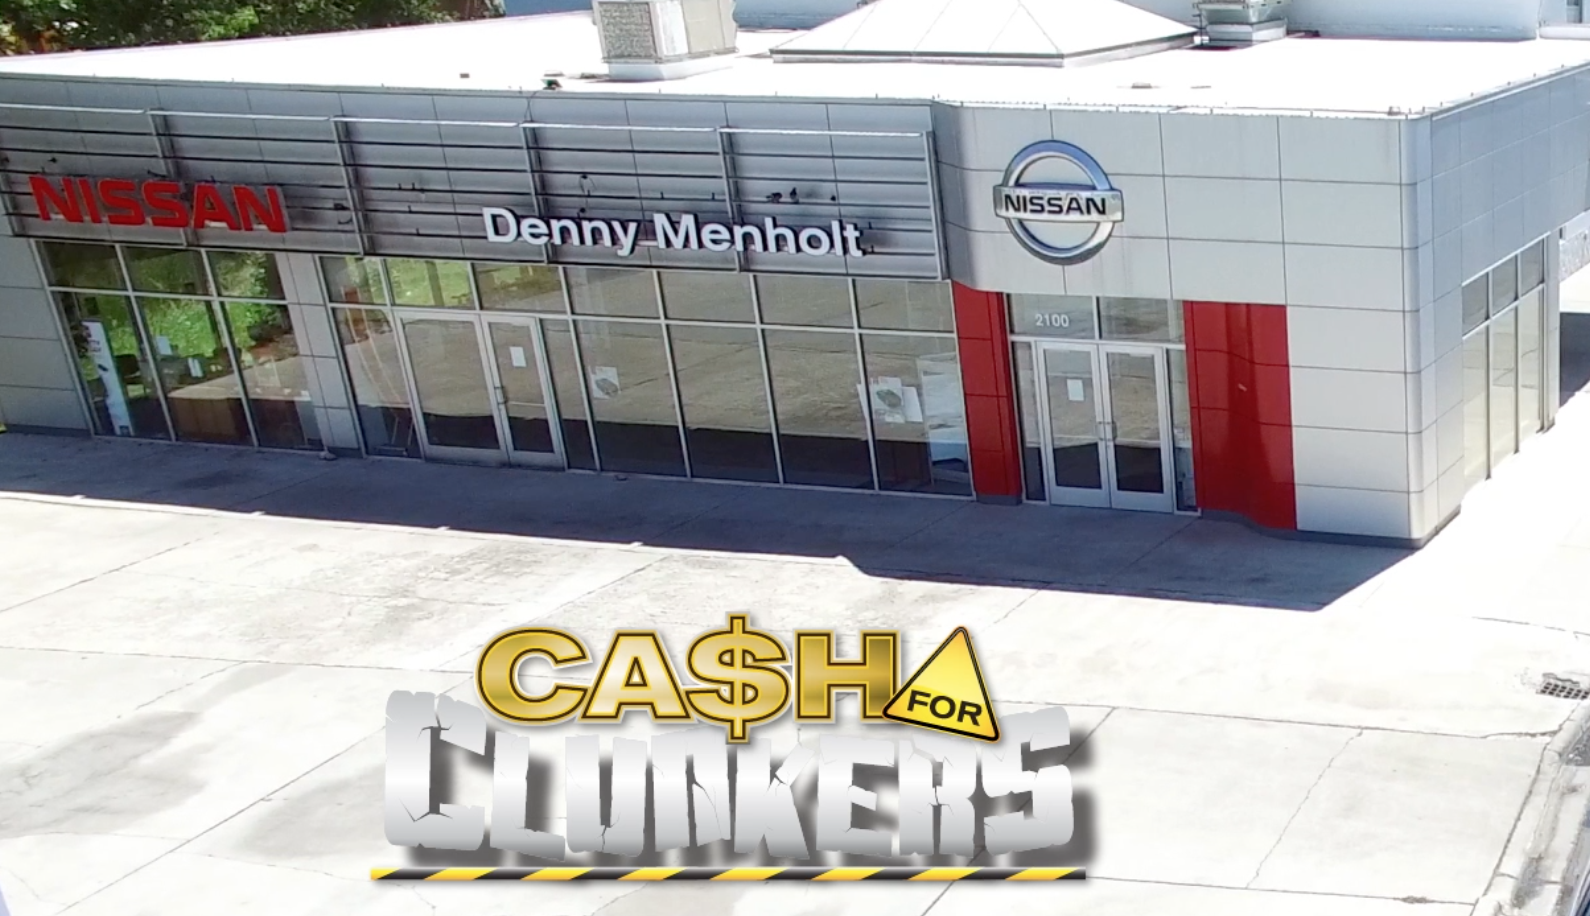 Cash for Clunkers graphic